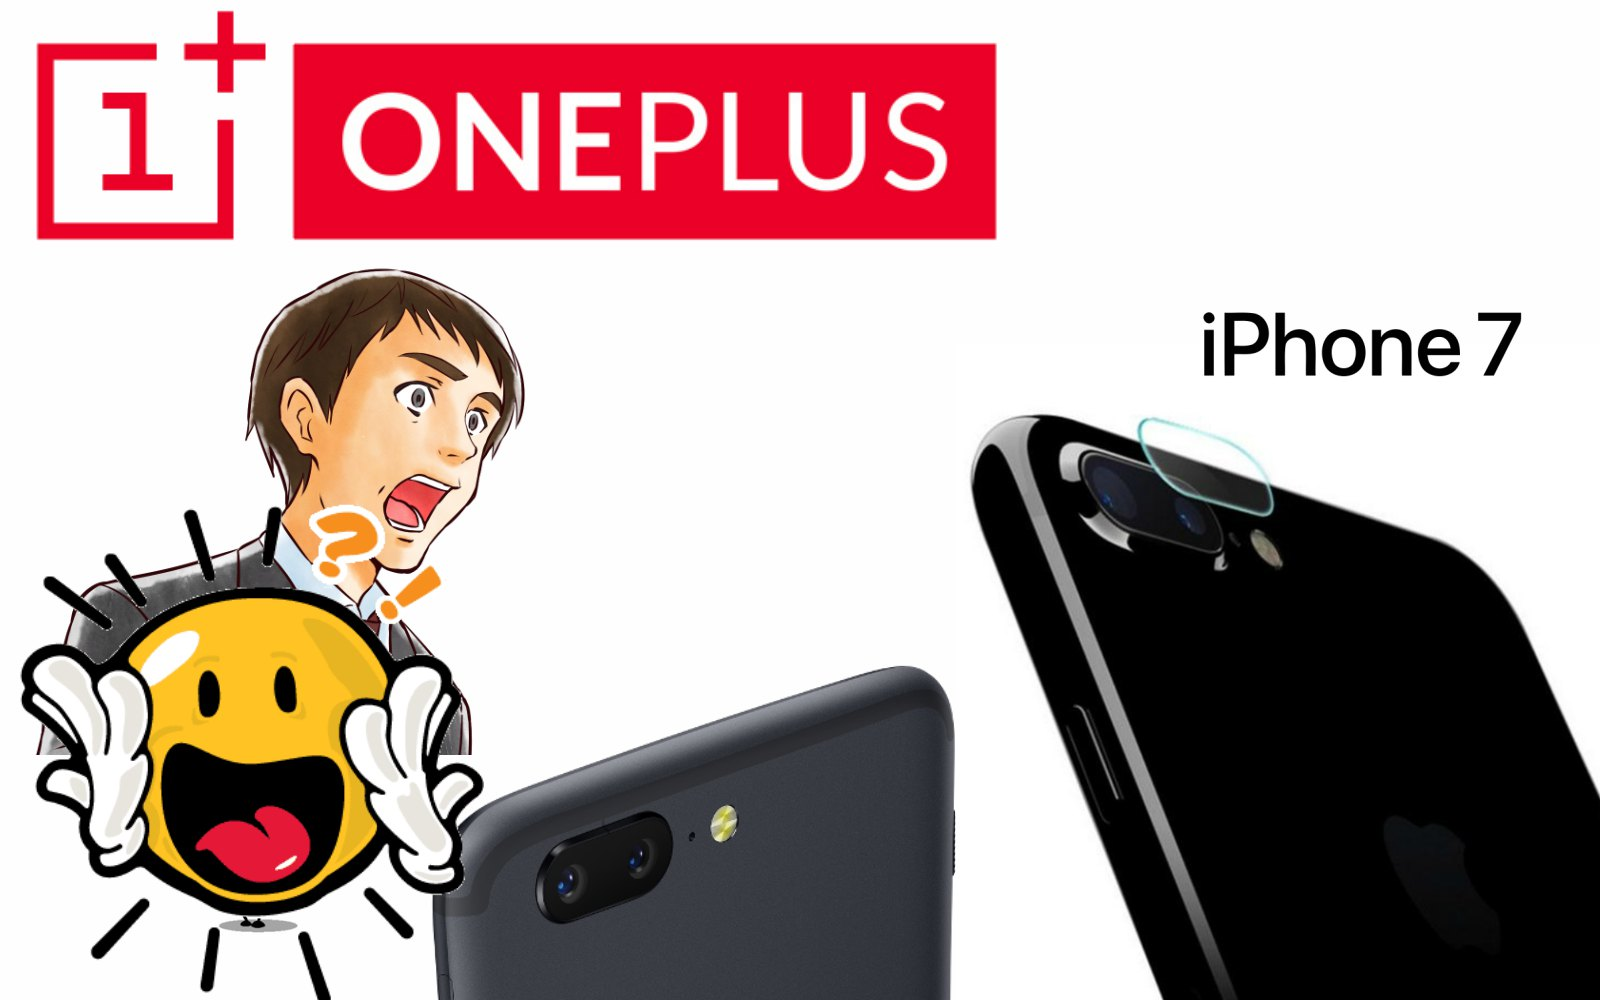 One Plus 5 is the first phone to beats the iPhone in terms of speed.